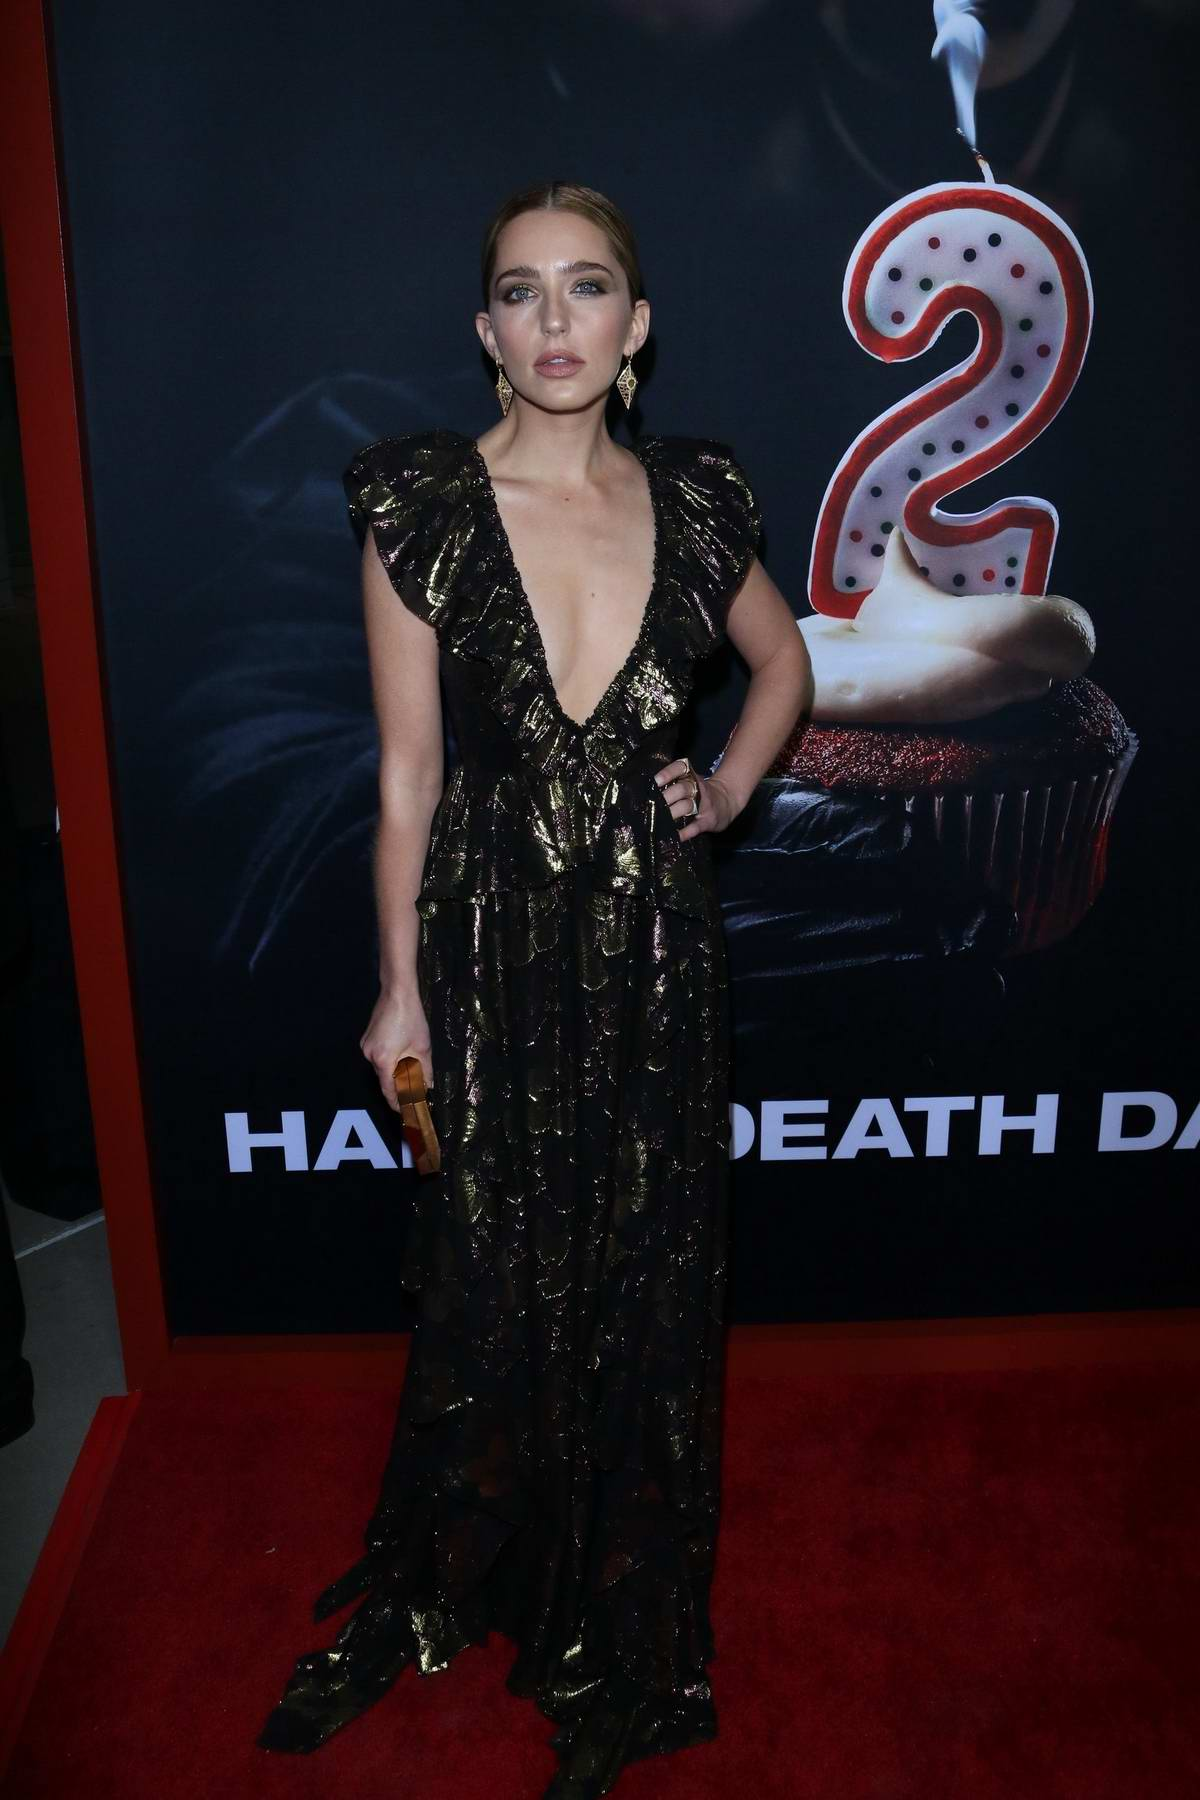 Jessica Rothe attends 'Happy Death Day 2U' premiere at the ArcLight Theatre in Hollywood, California